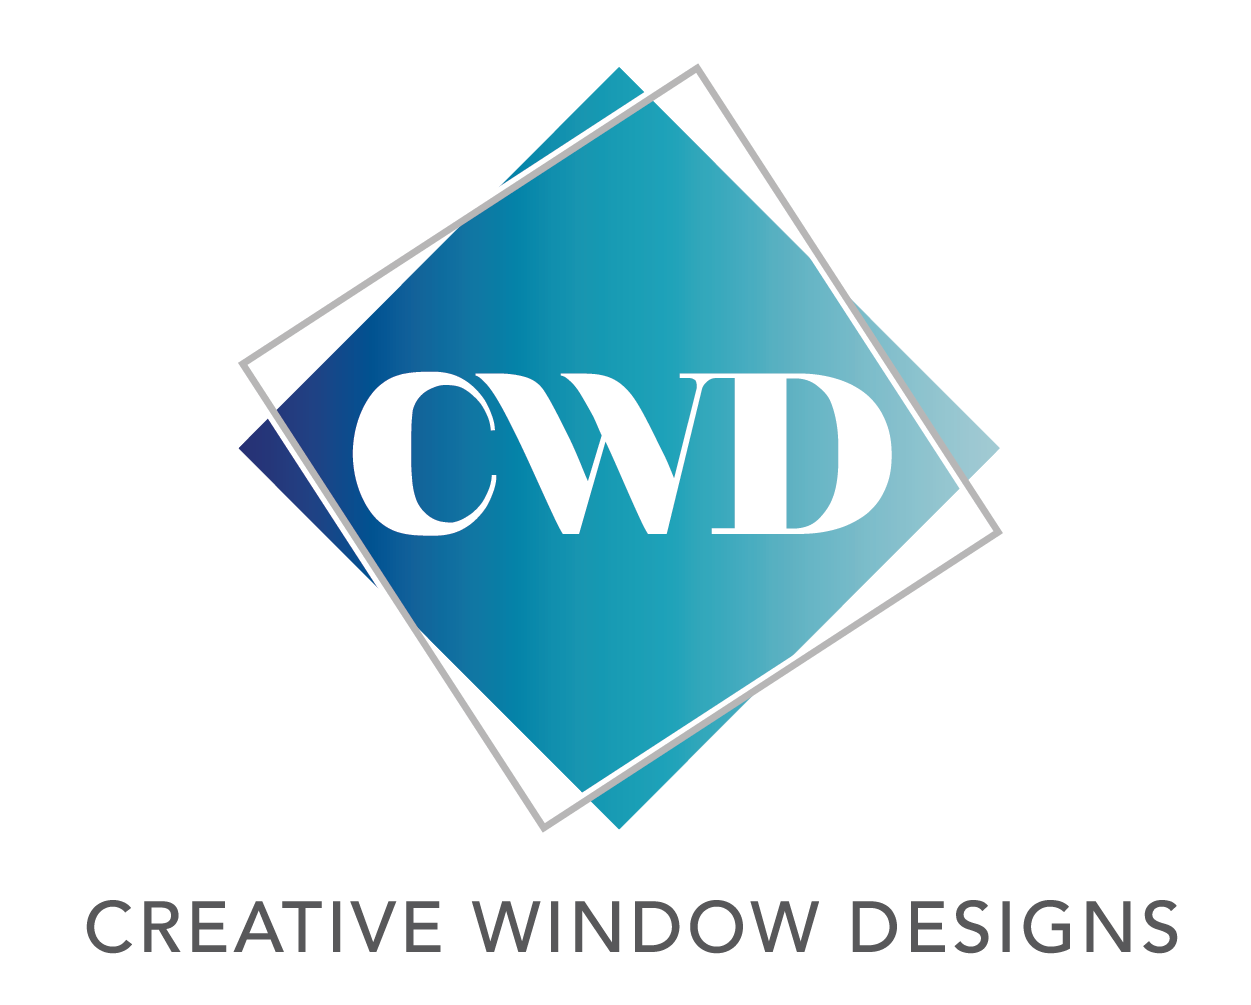 Creative Window Designs